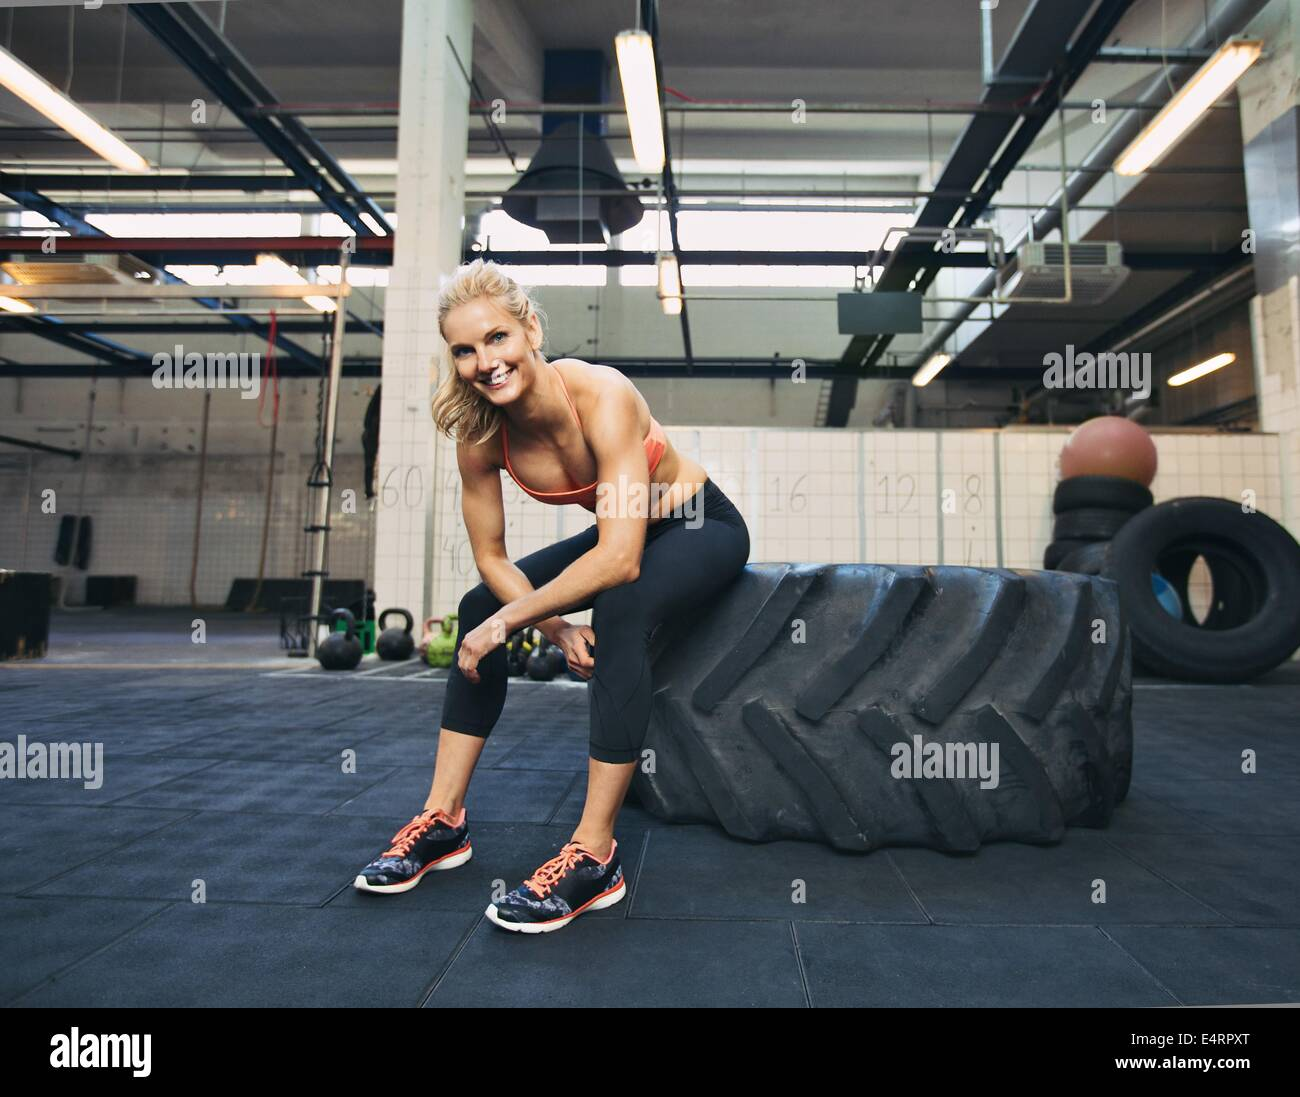 Woman sitting on tire and smiling at camera at gym. Crossfit female athlete taking rest after working out. Stock Photo